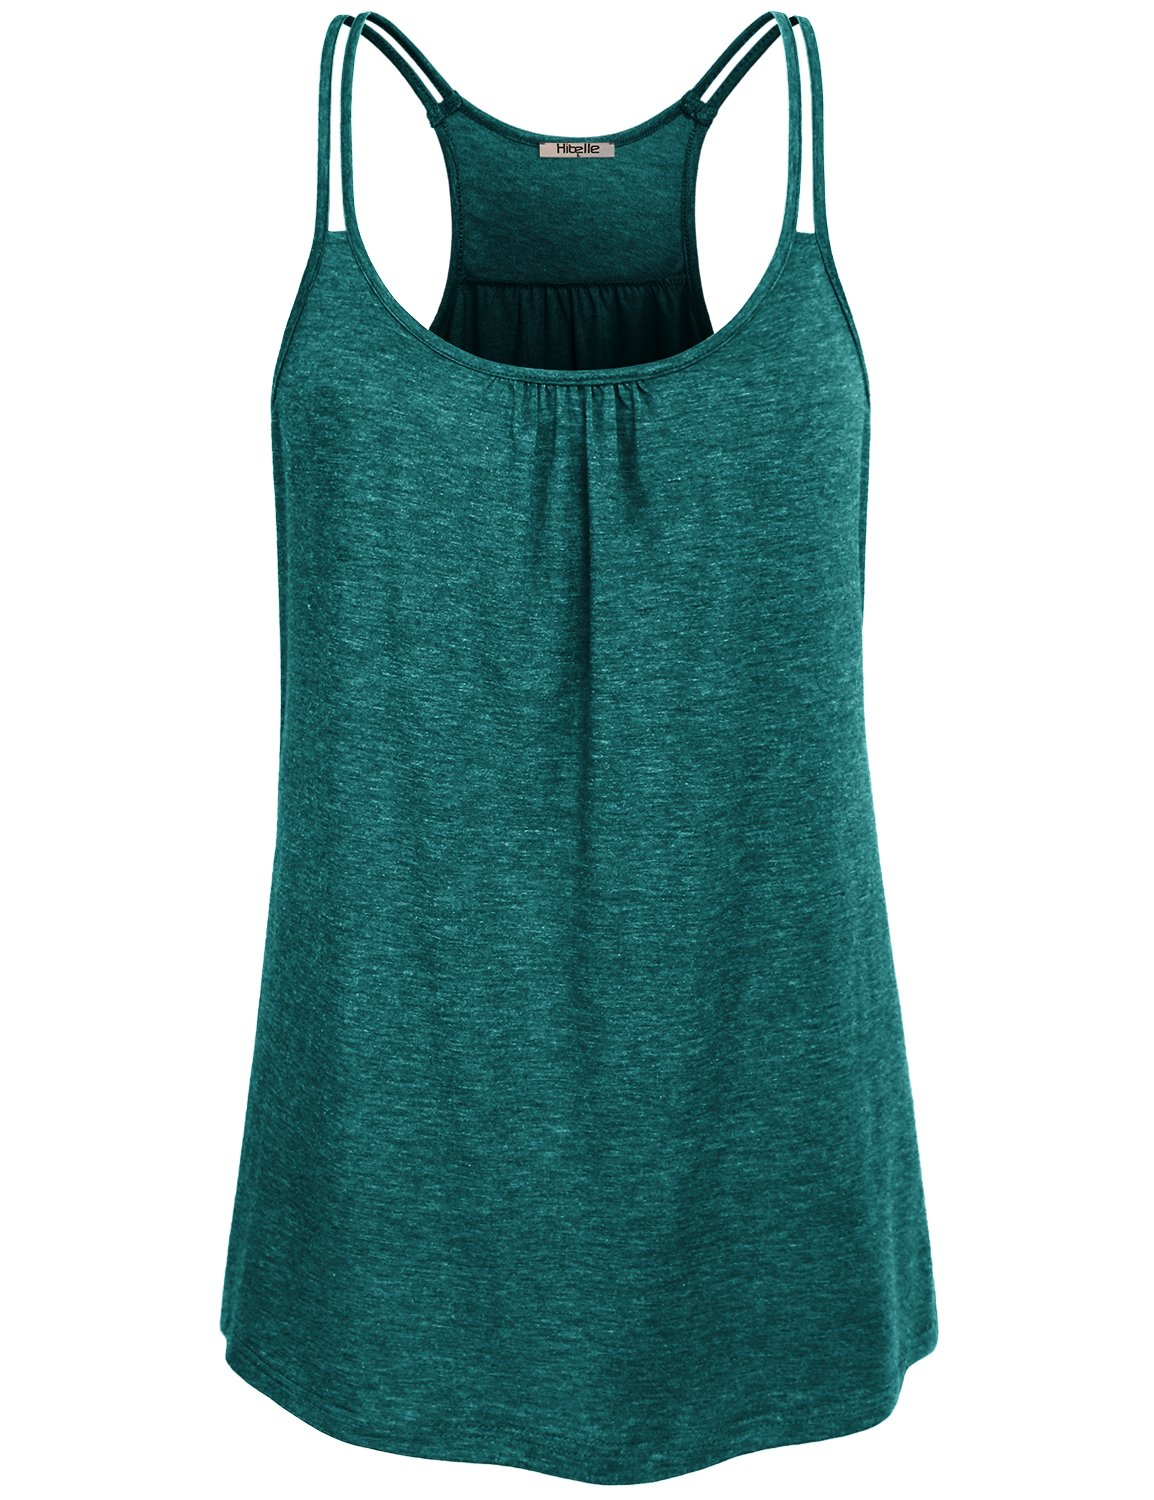 Hibelle Cute Summer Tops for Women, Ladies Dry Fit Shirts Sleeveless Casual Yoga Tank Flowy Curved Hem Dressy Front Ruched Tunic Ribbed Racerback Chic Slim Stitching Cami Green Small